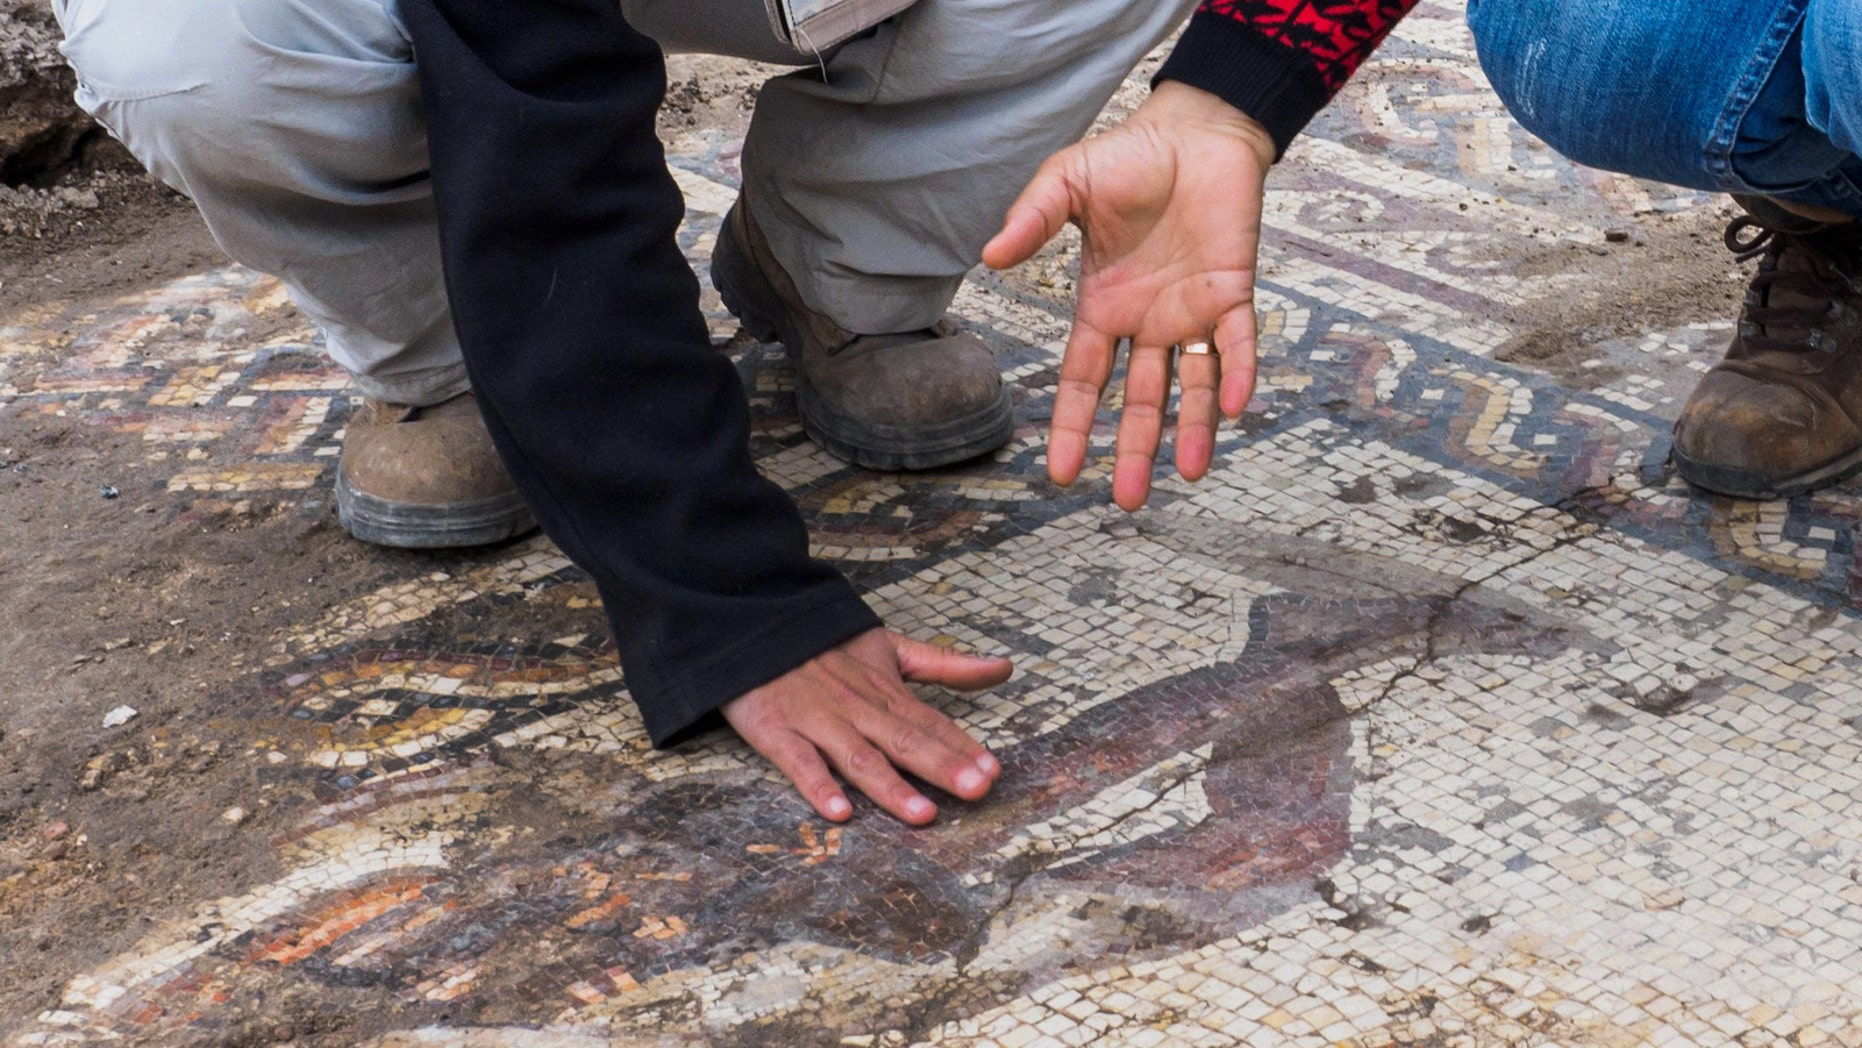 Archaeologists examine the Roman mosaic discovered in the ancient city of Caesarea (Photo: Assaf Peretz, Israel Antiquities Authority)